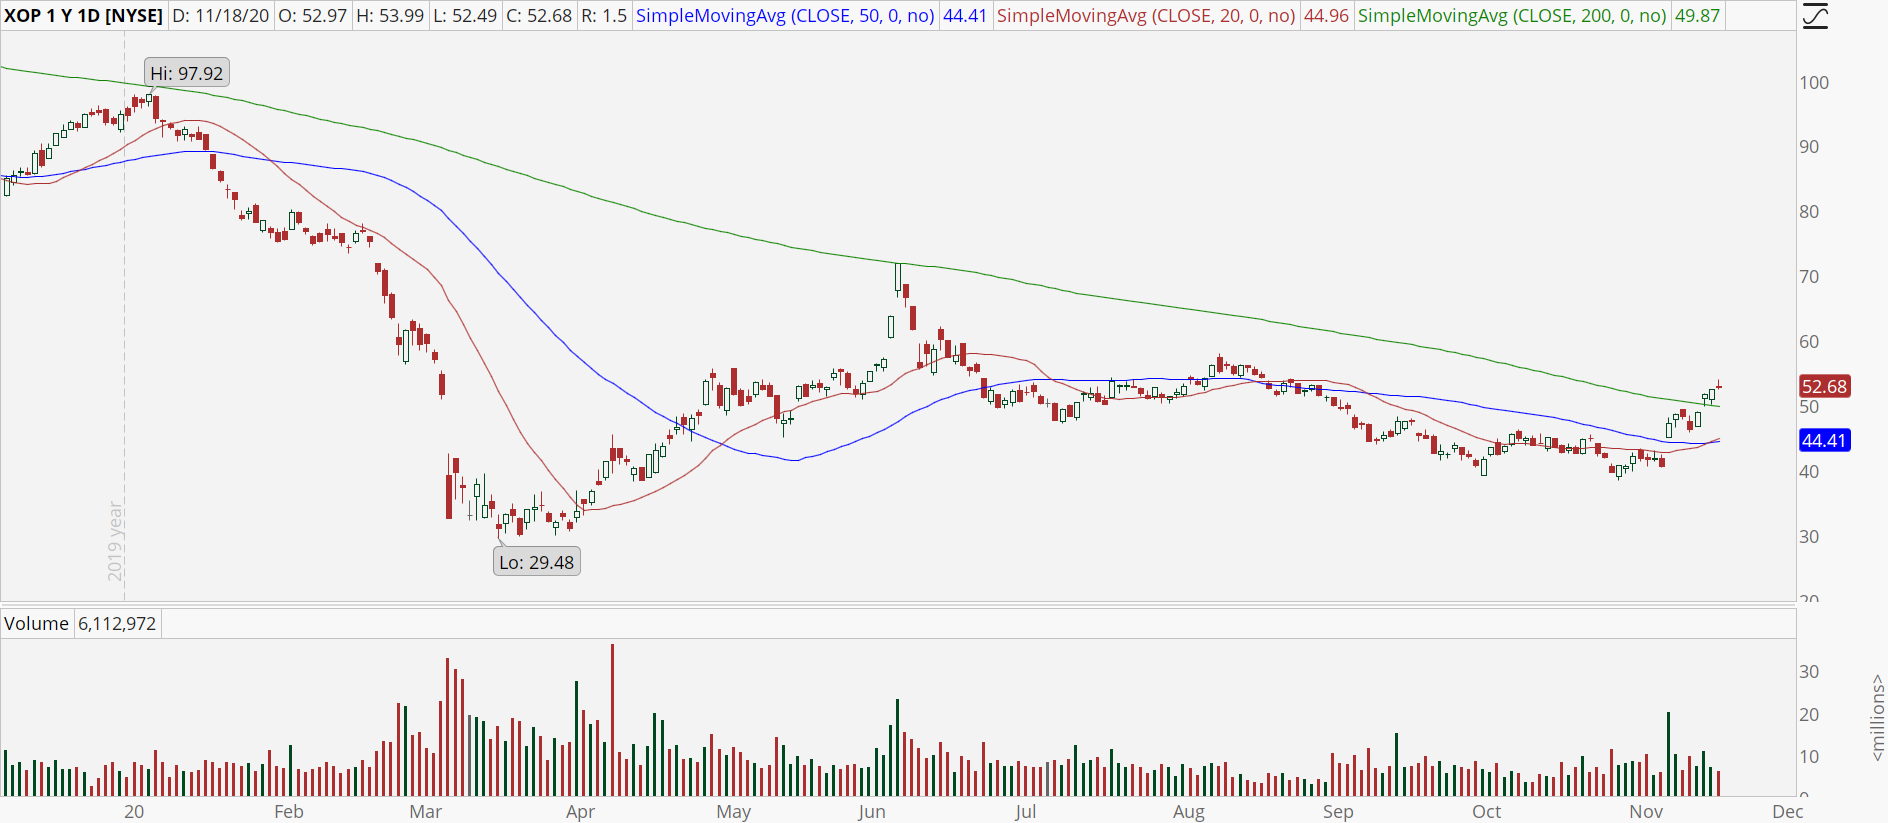 Oil & Gas ETF (XOP) chart with upside break of 200-day moving average